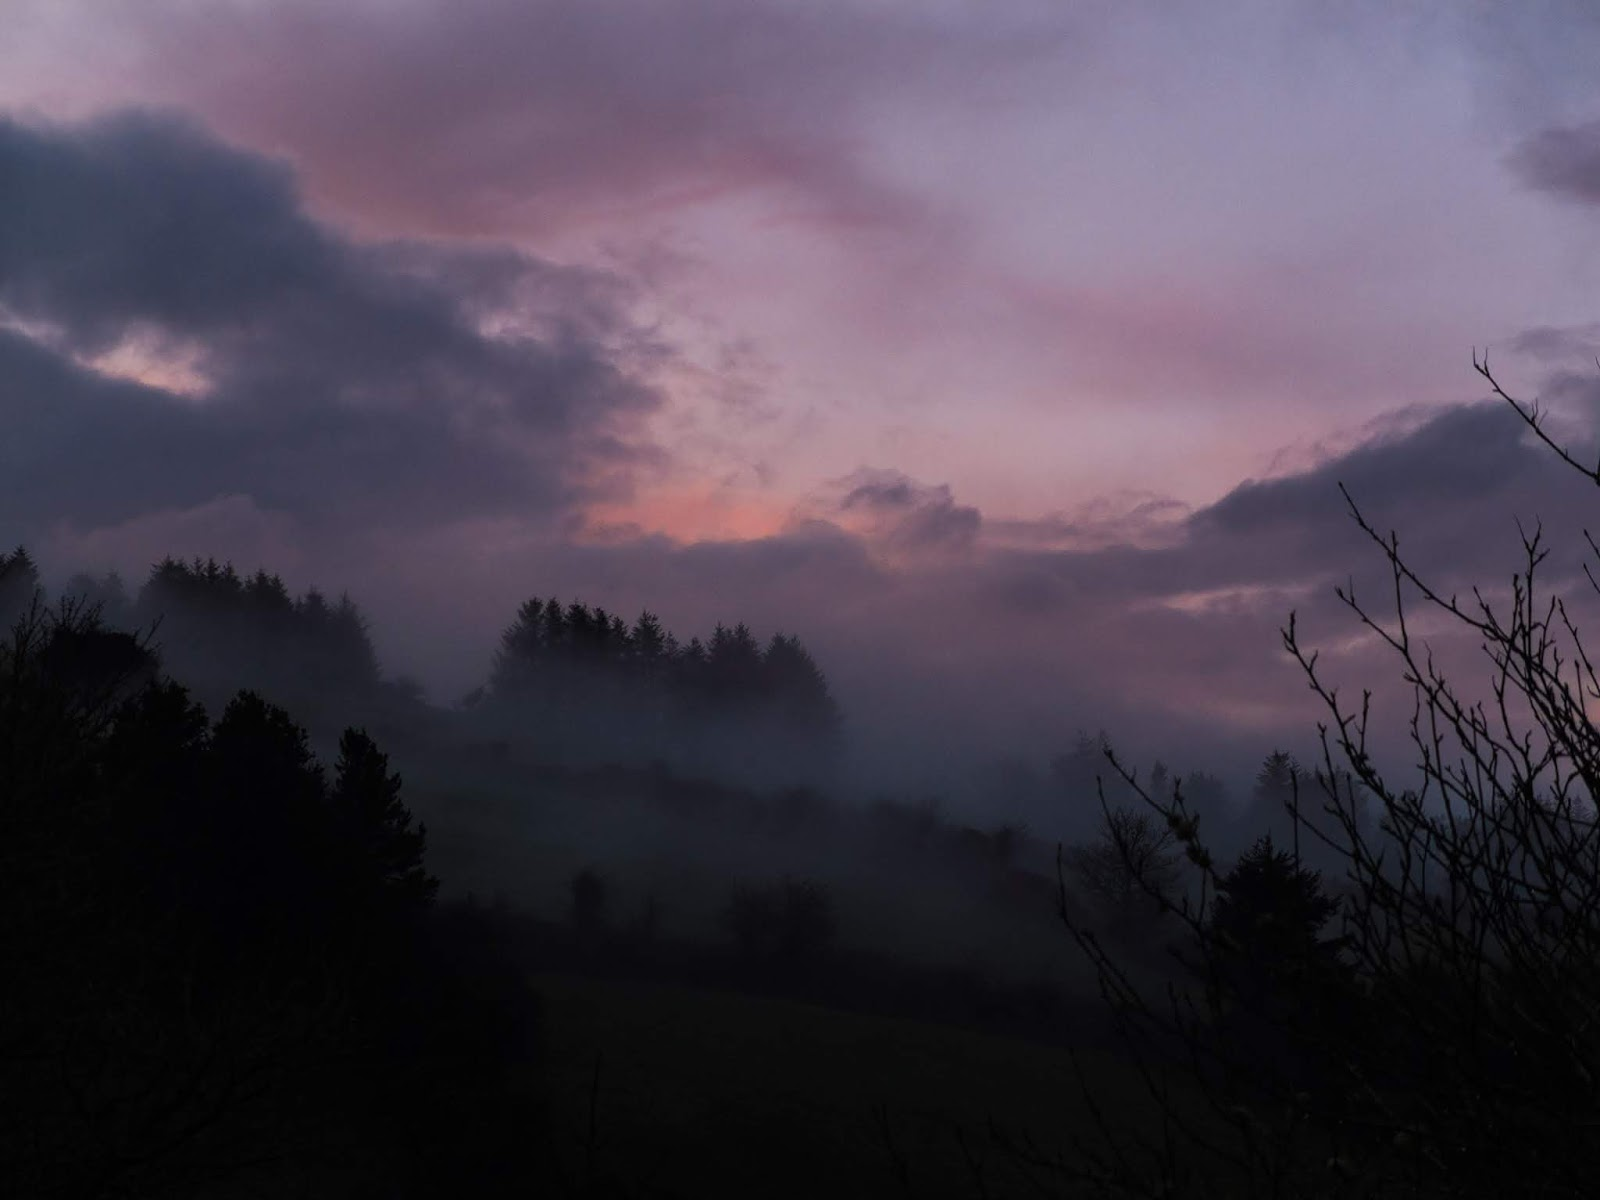 Fog rising from the mountainside during a light pink cloud sunset.